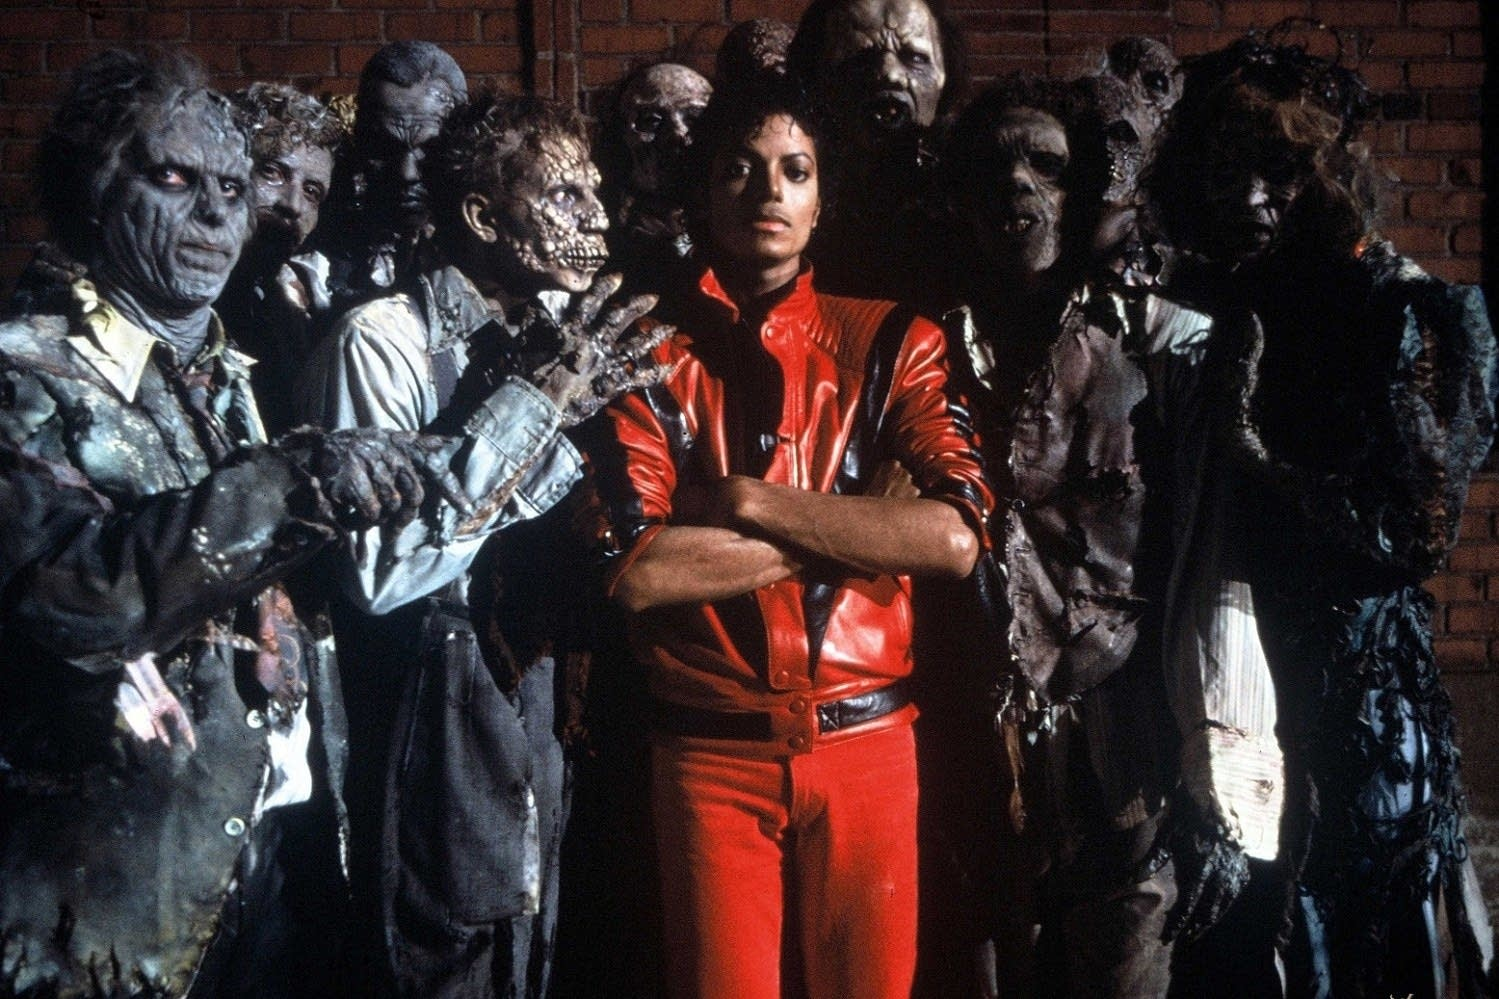 Michael Jackson and friends in a promotional image for 'Thriller.'